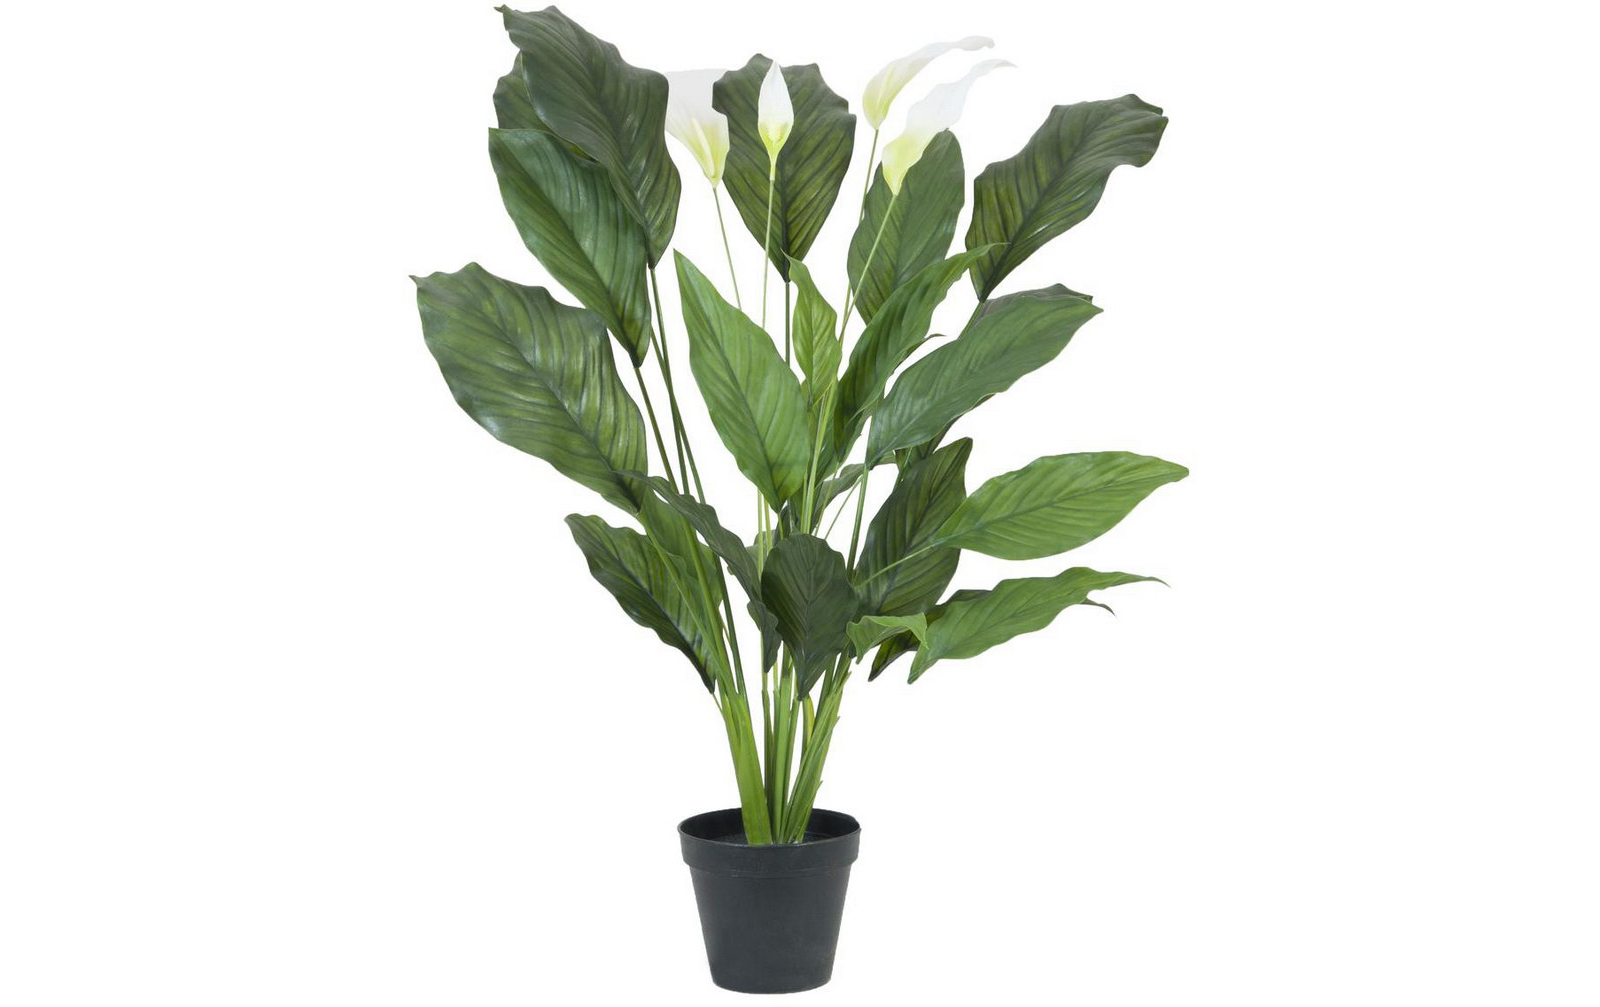 europalms-spathiphyllum-deluxe-83cm-kunststoffpflanze